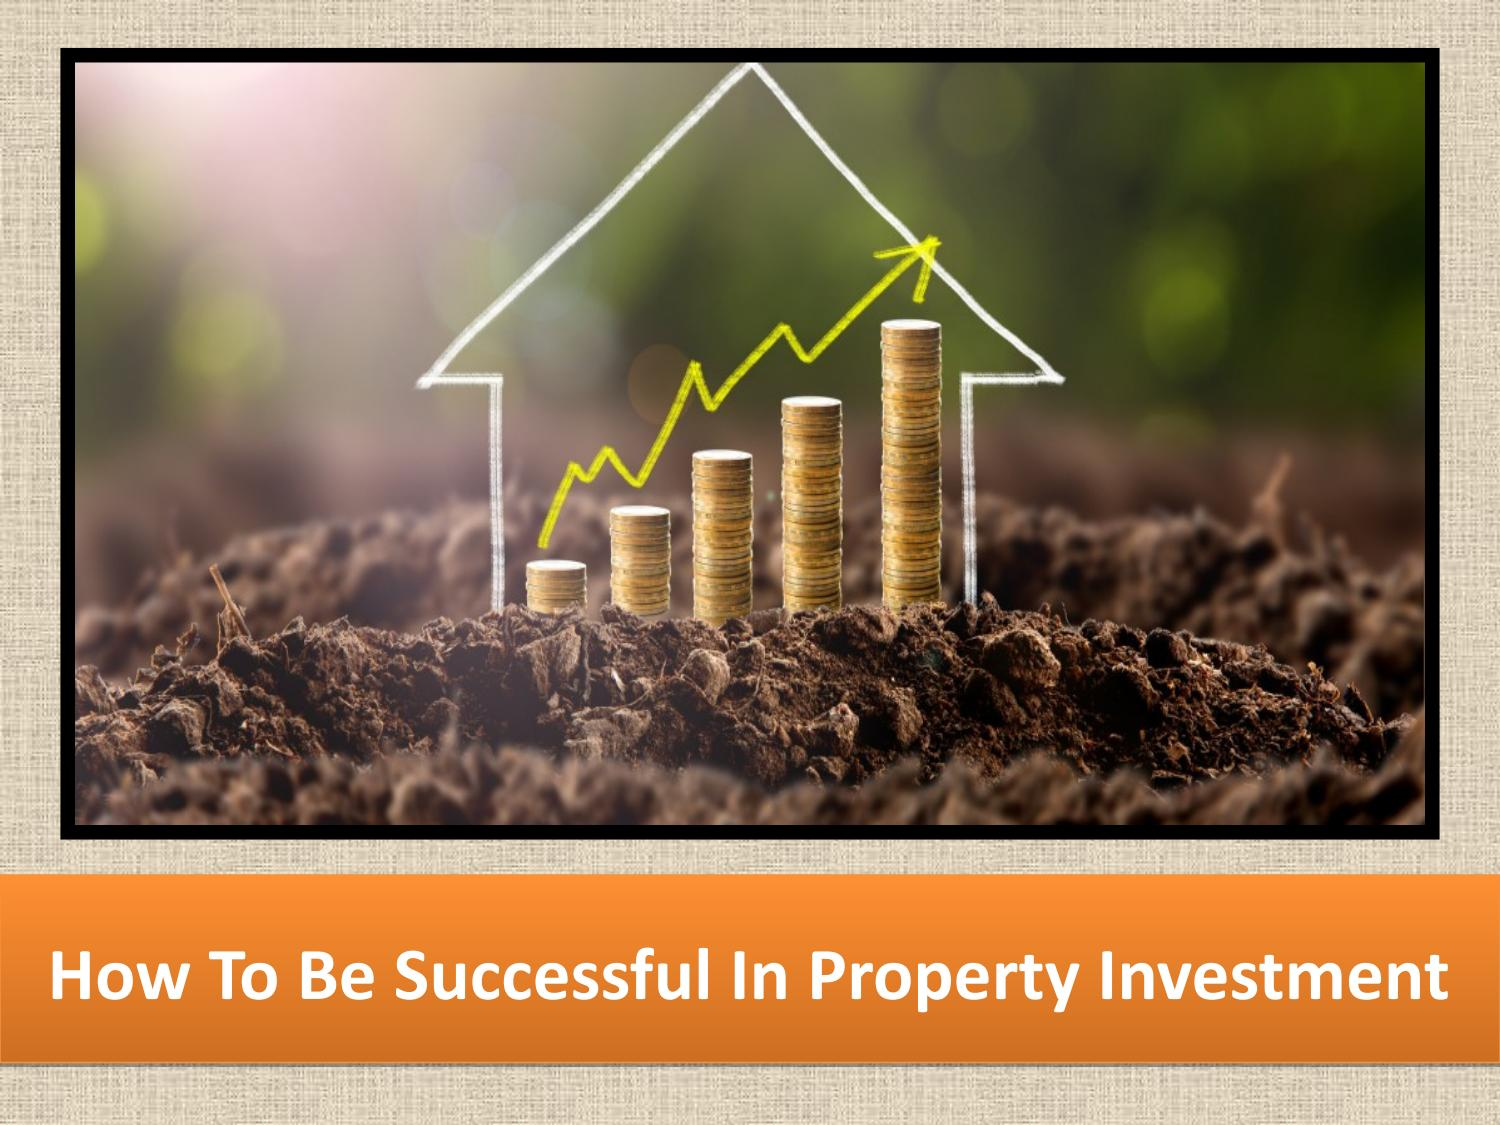 How to Be Successful in Property Investment images